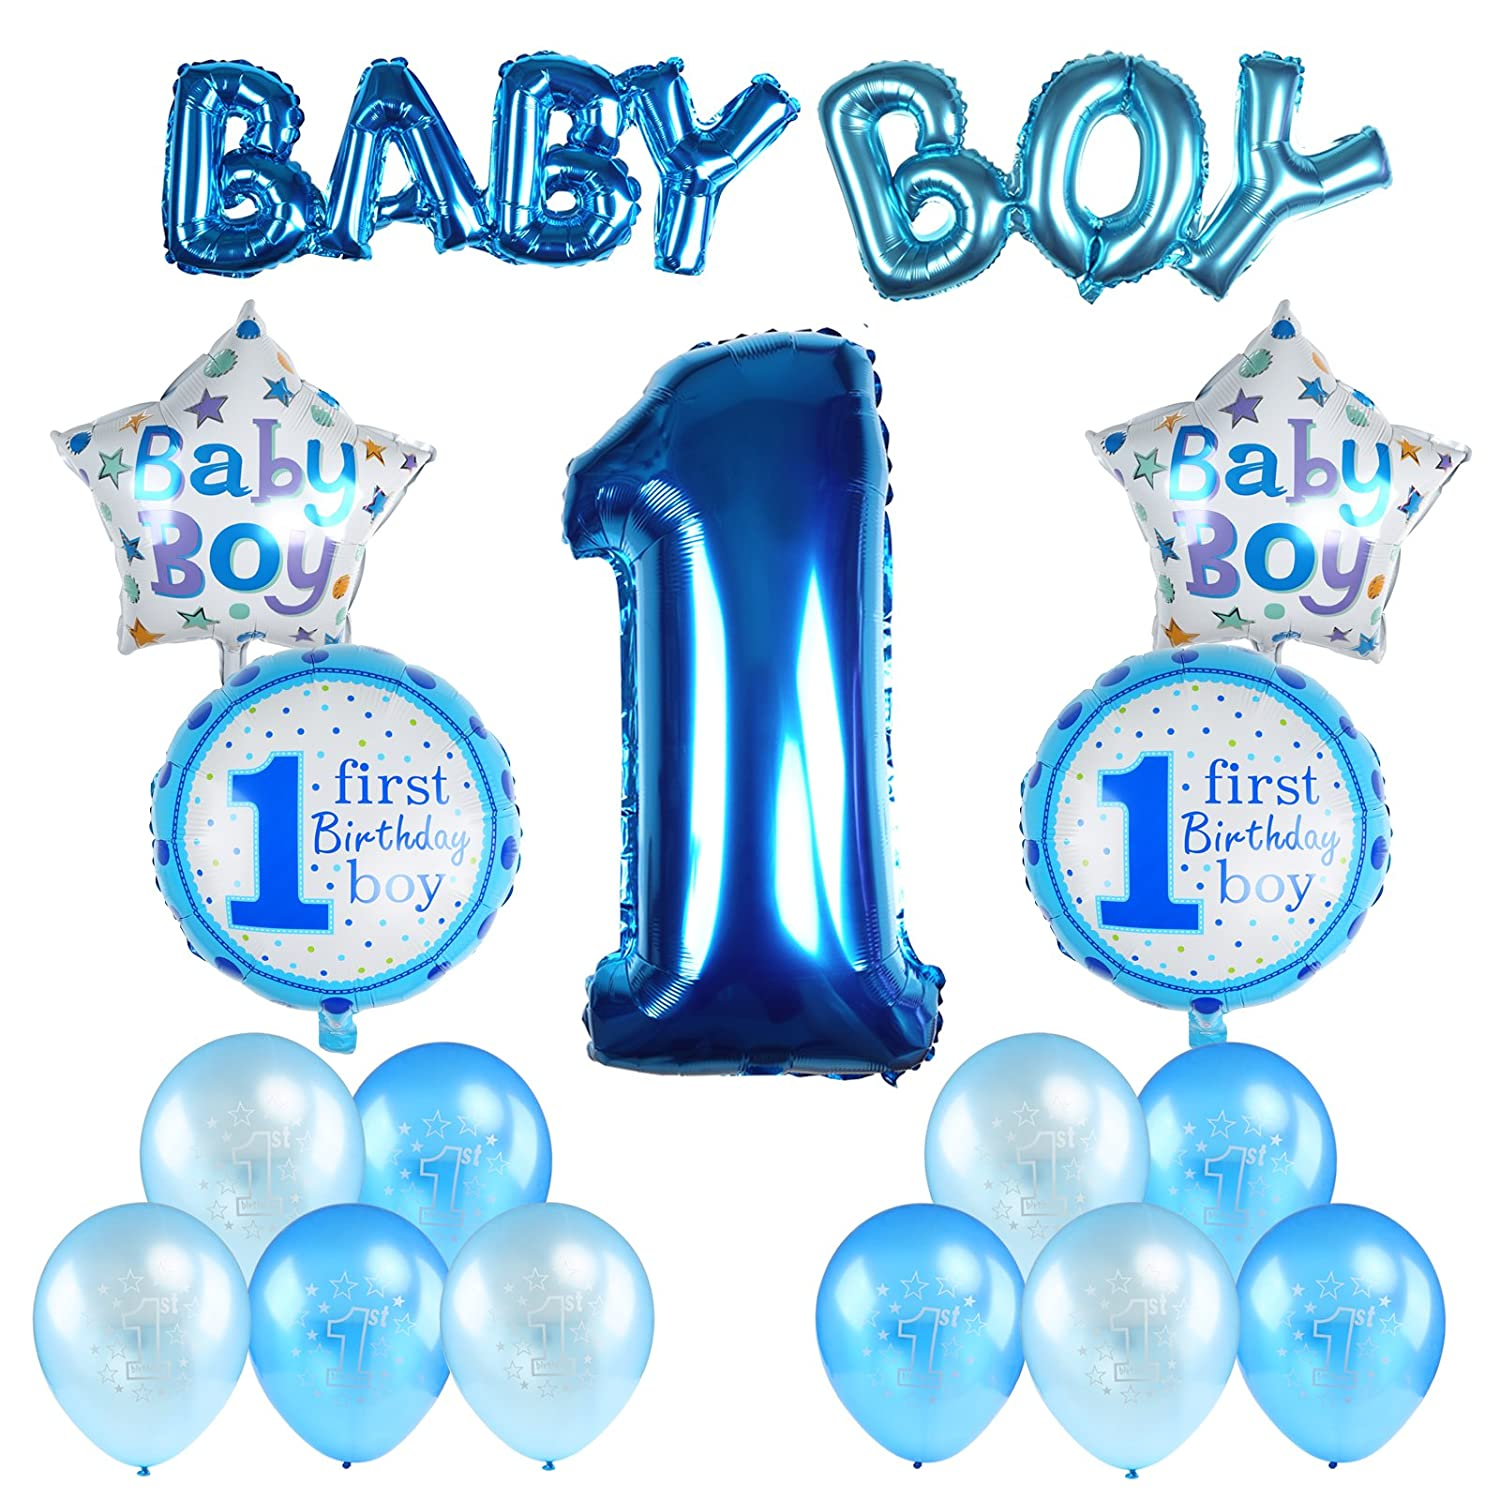 Kesoto Baby Boy 1st Birthday Party Decoration Set - Inflatable Helium Foil Balloons Supplies Party Air Balloons Set for Baby Shower - Blue